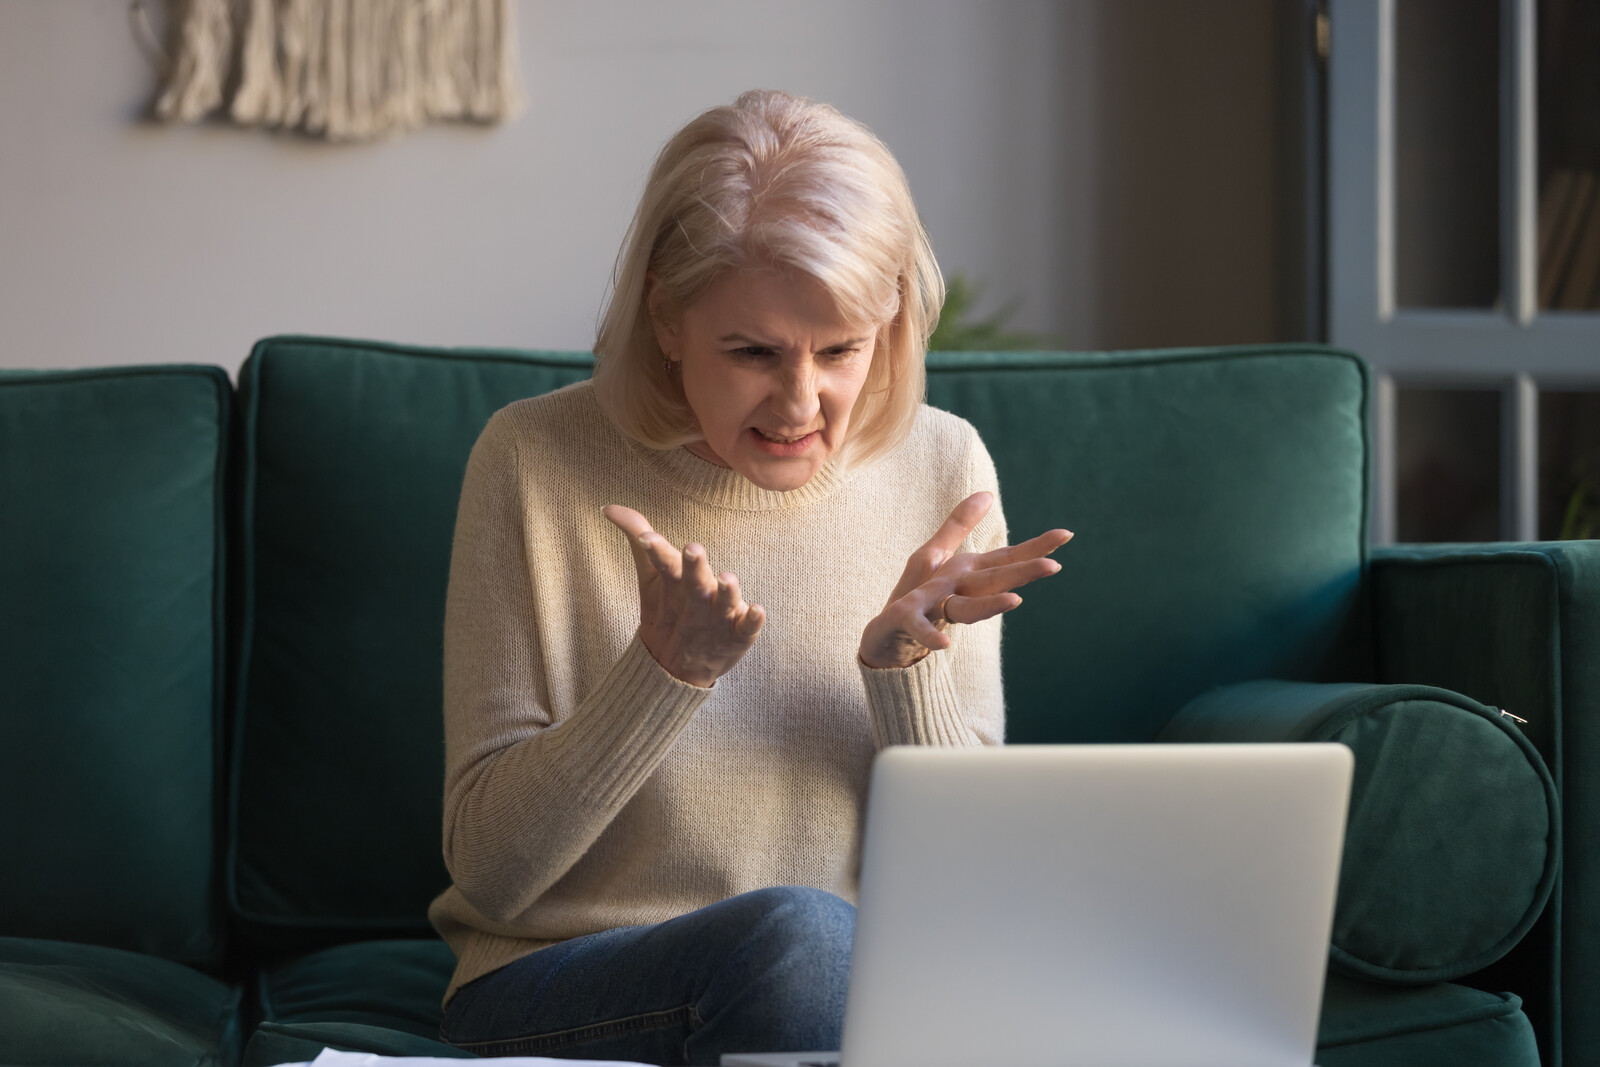 Frustrated mature female get mad because she is having issues with fake antivirus software